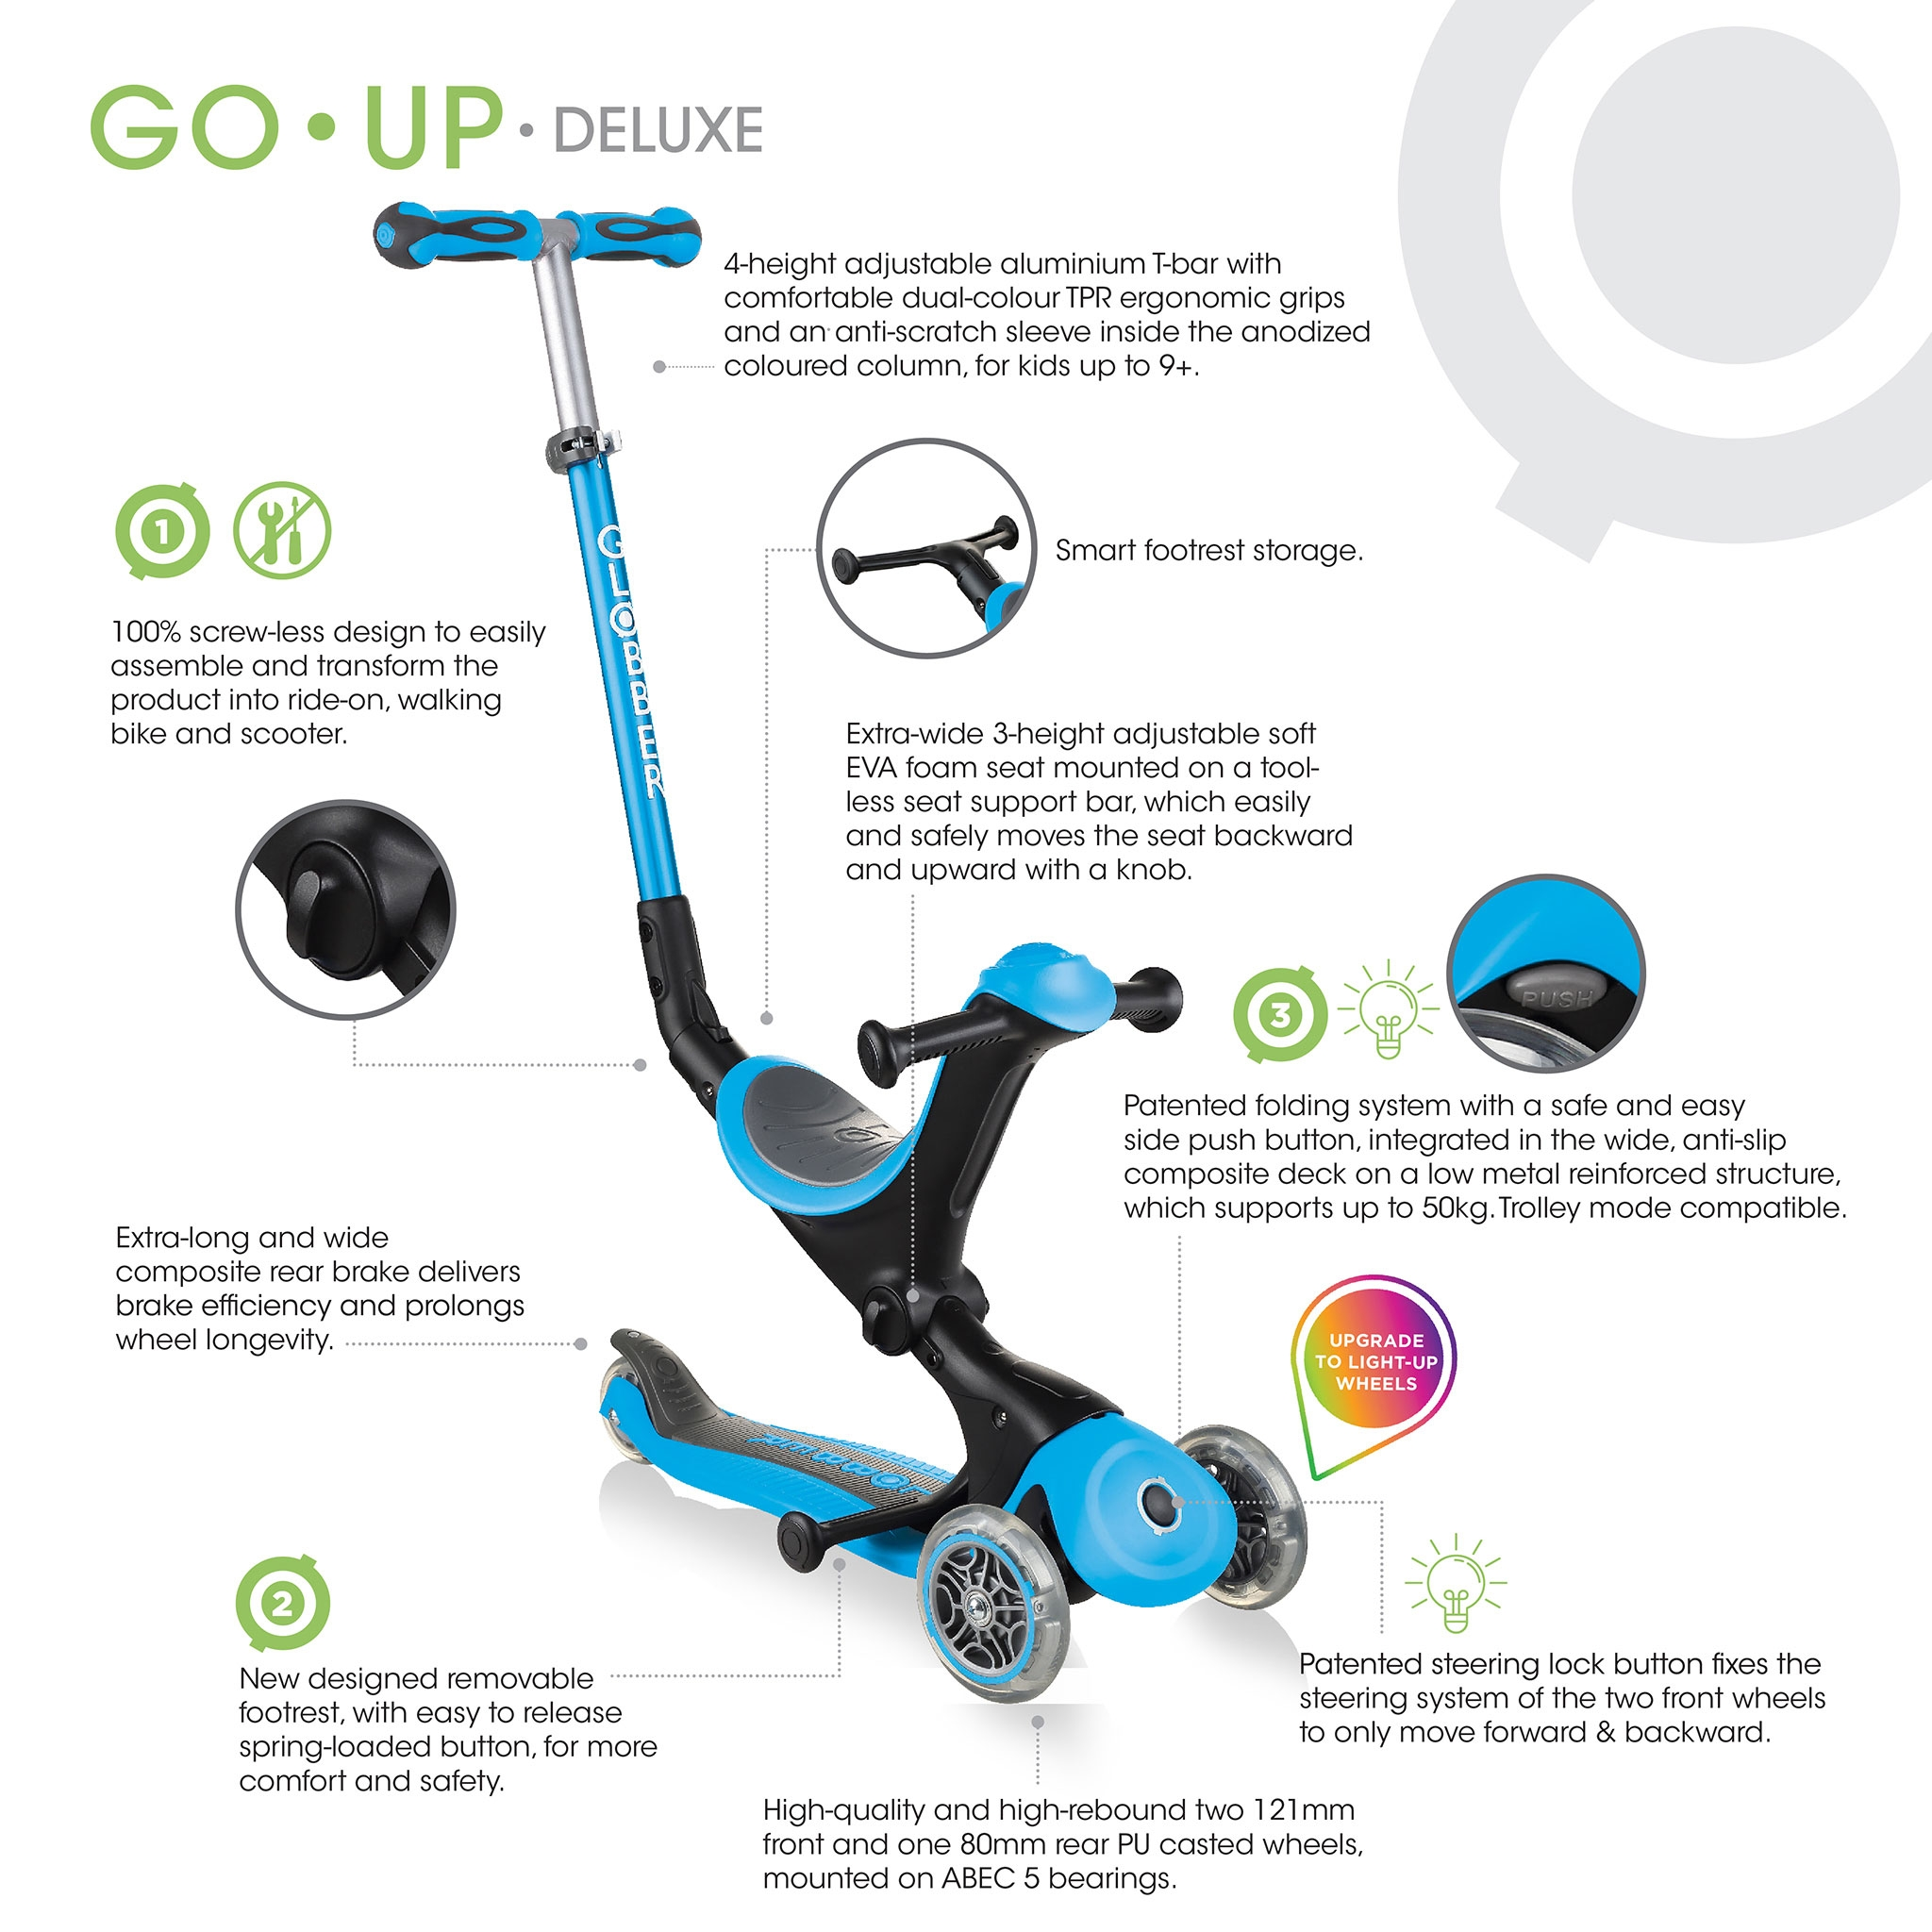 foldable light-up scooter with seat for toddlers - Globber GO-UP DELUXE LIGHTS 1